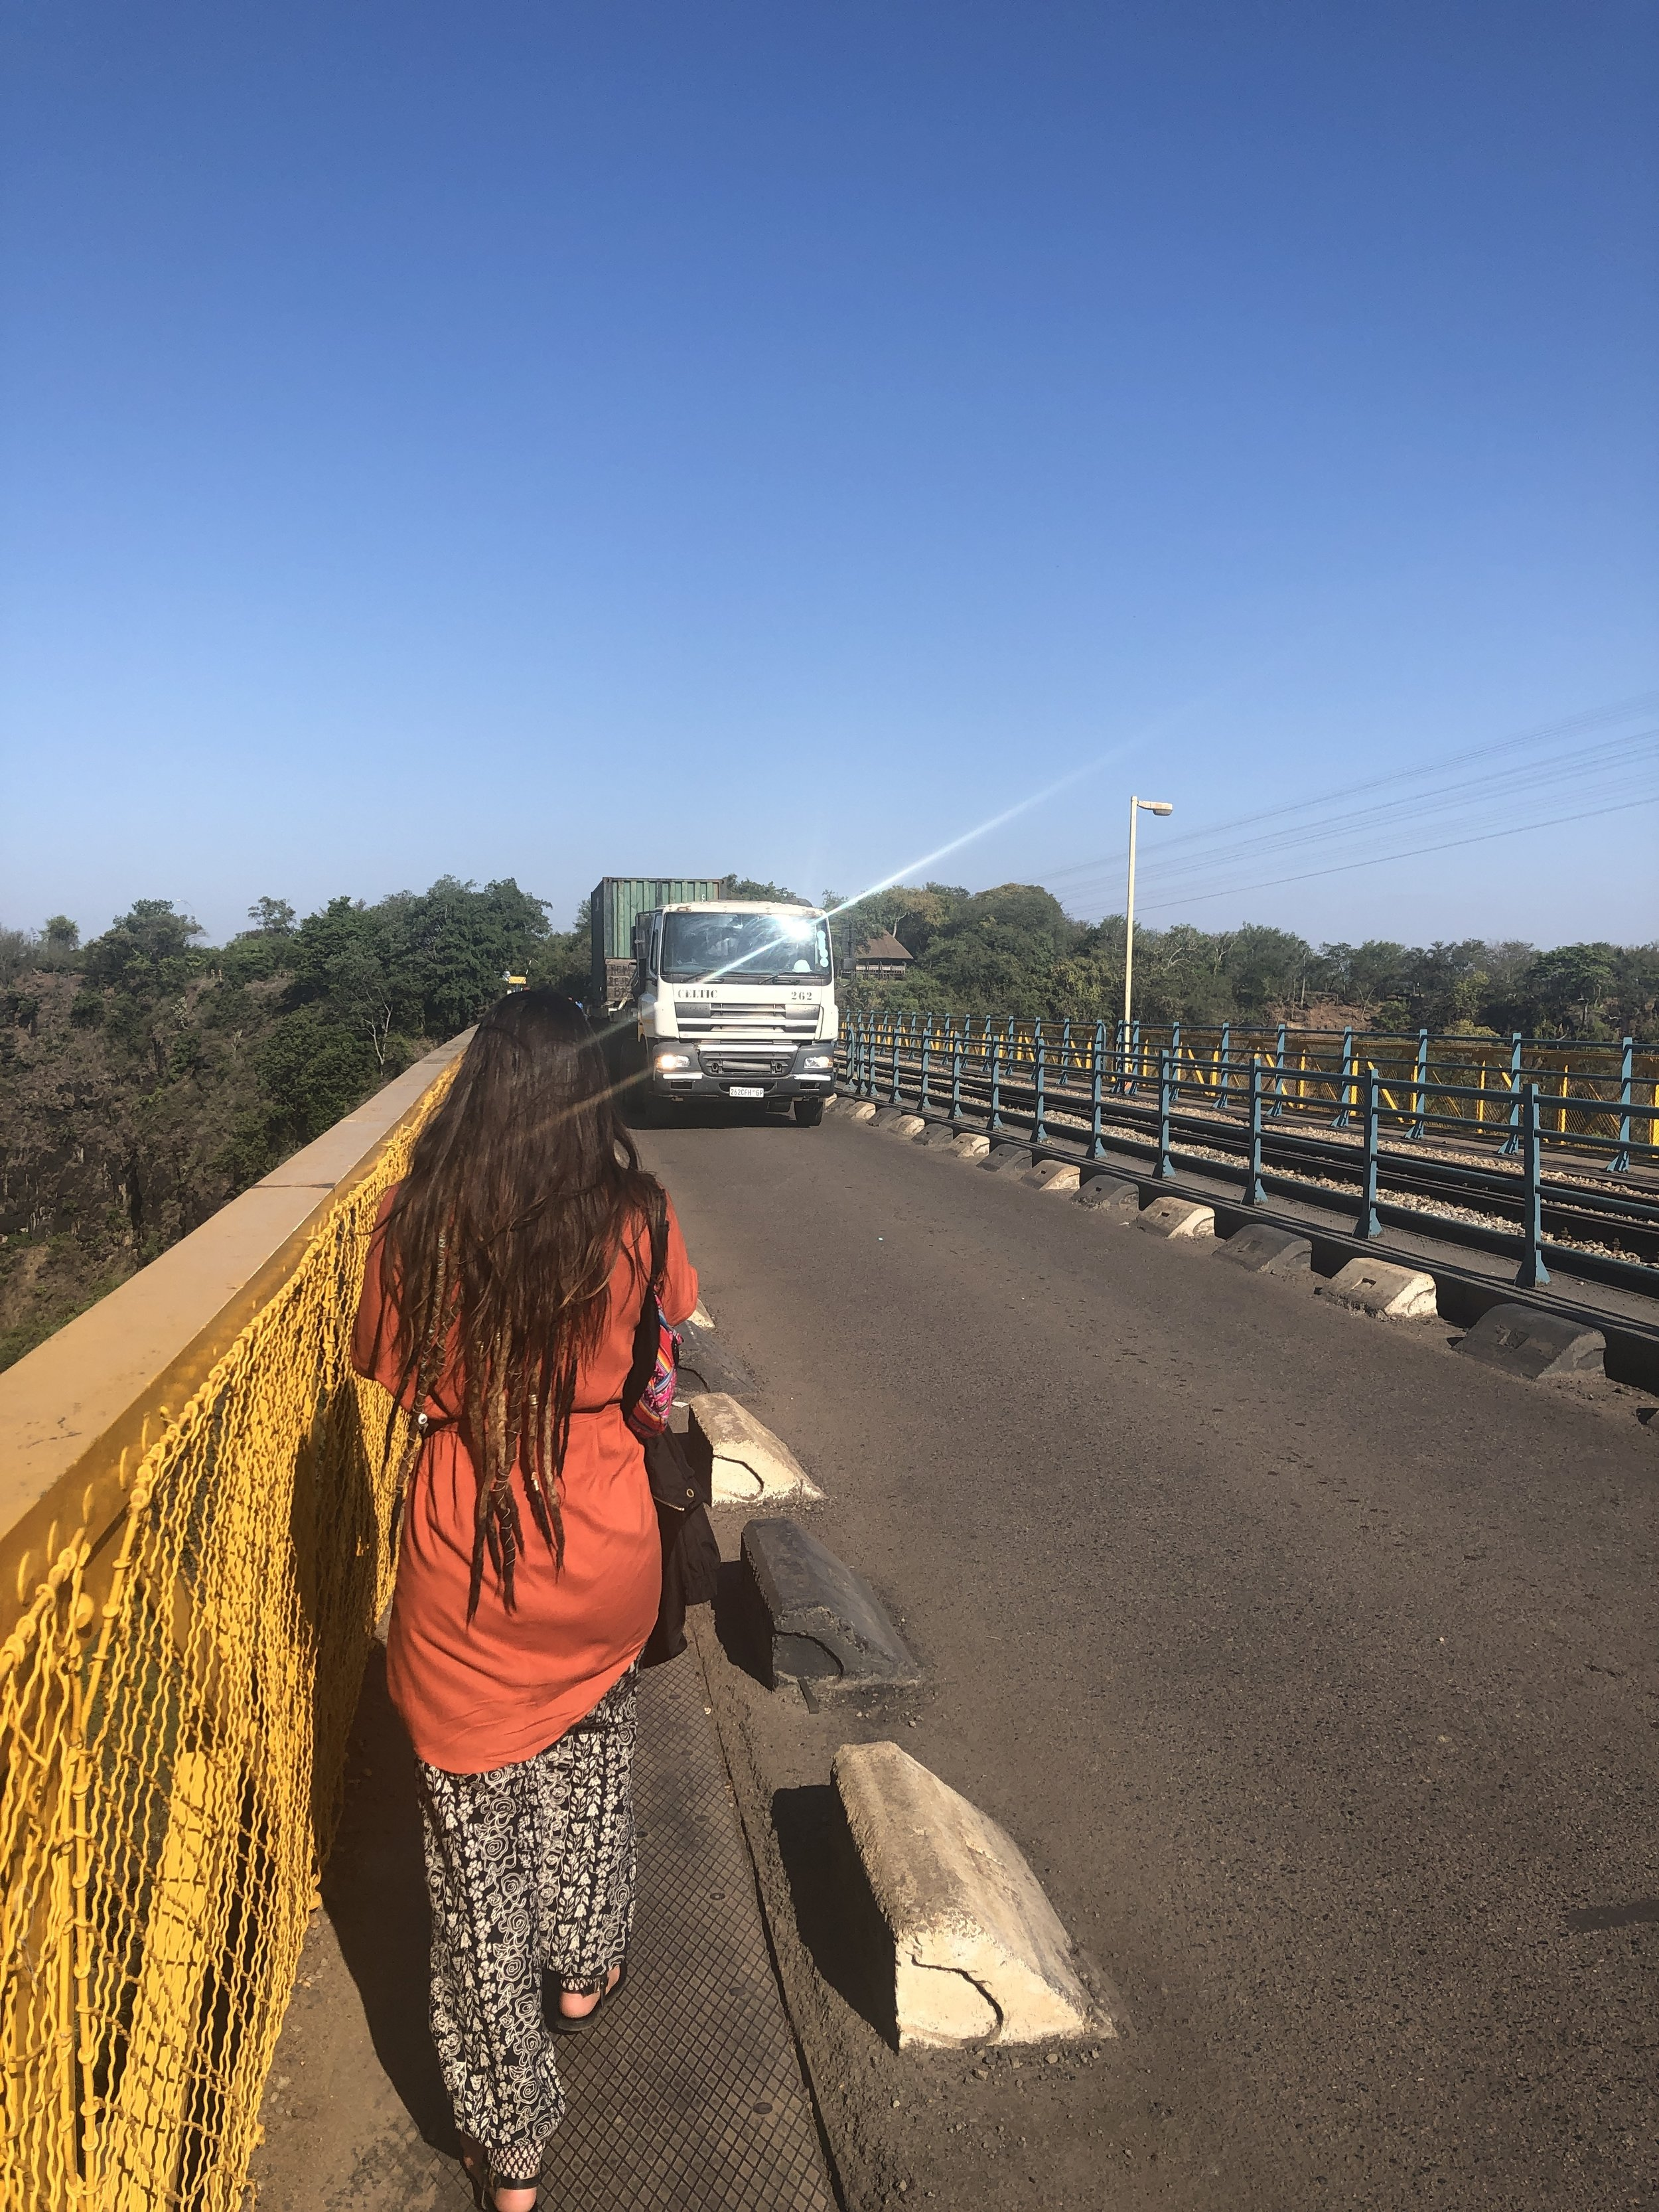 Walking across the border between Zim and Zam, windbreaker (laughable coverage) in hand, because this next part is supposed to be wet.